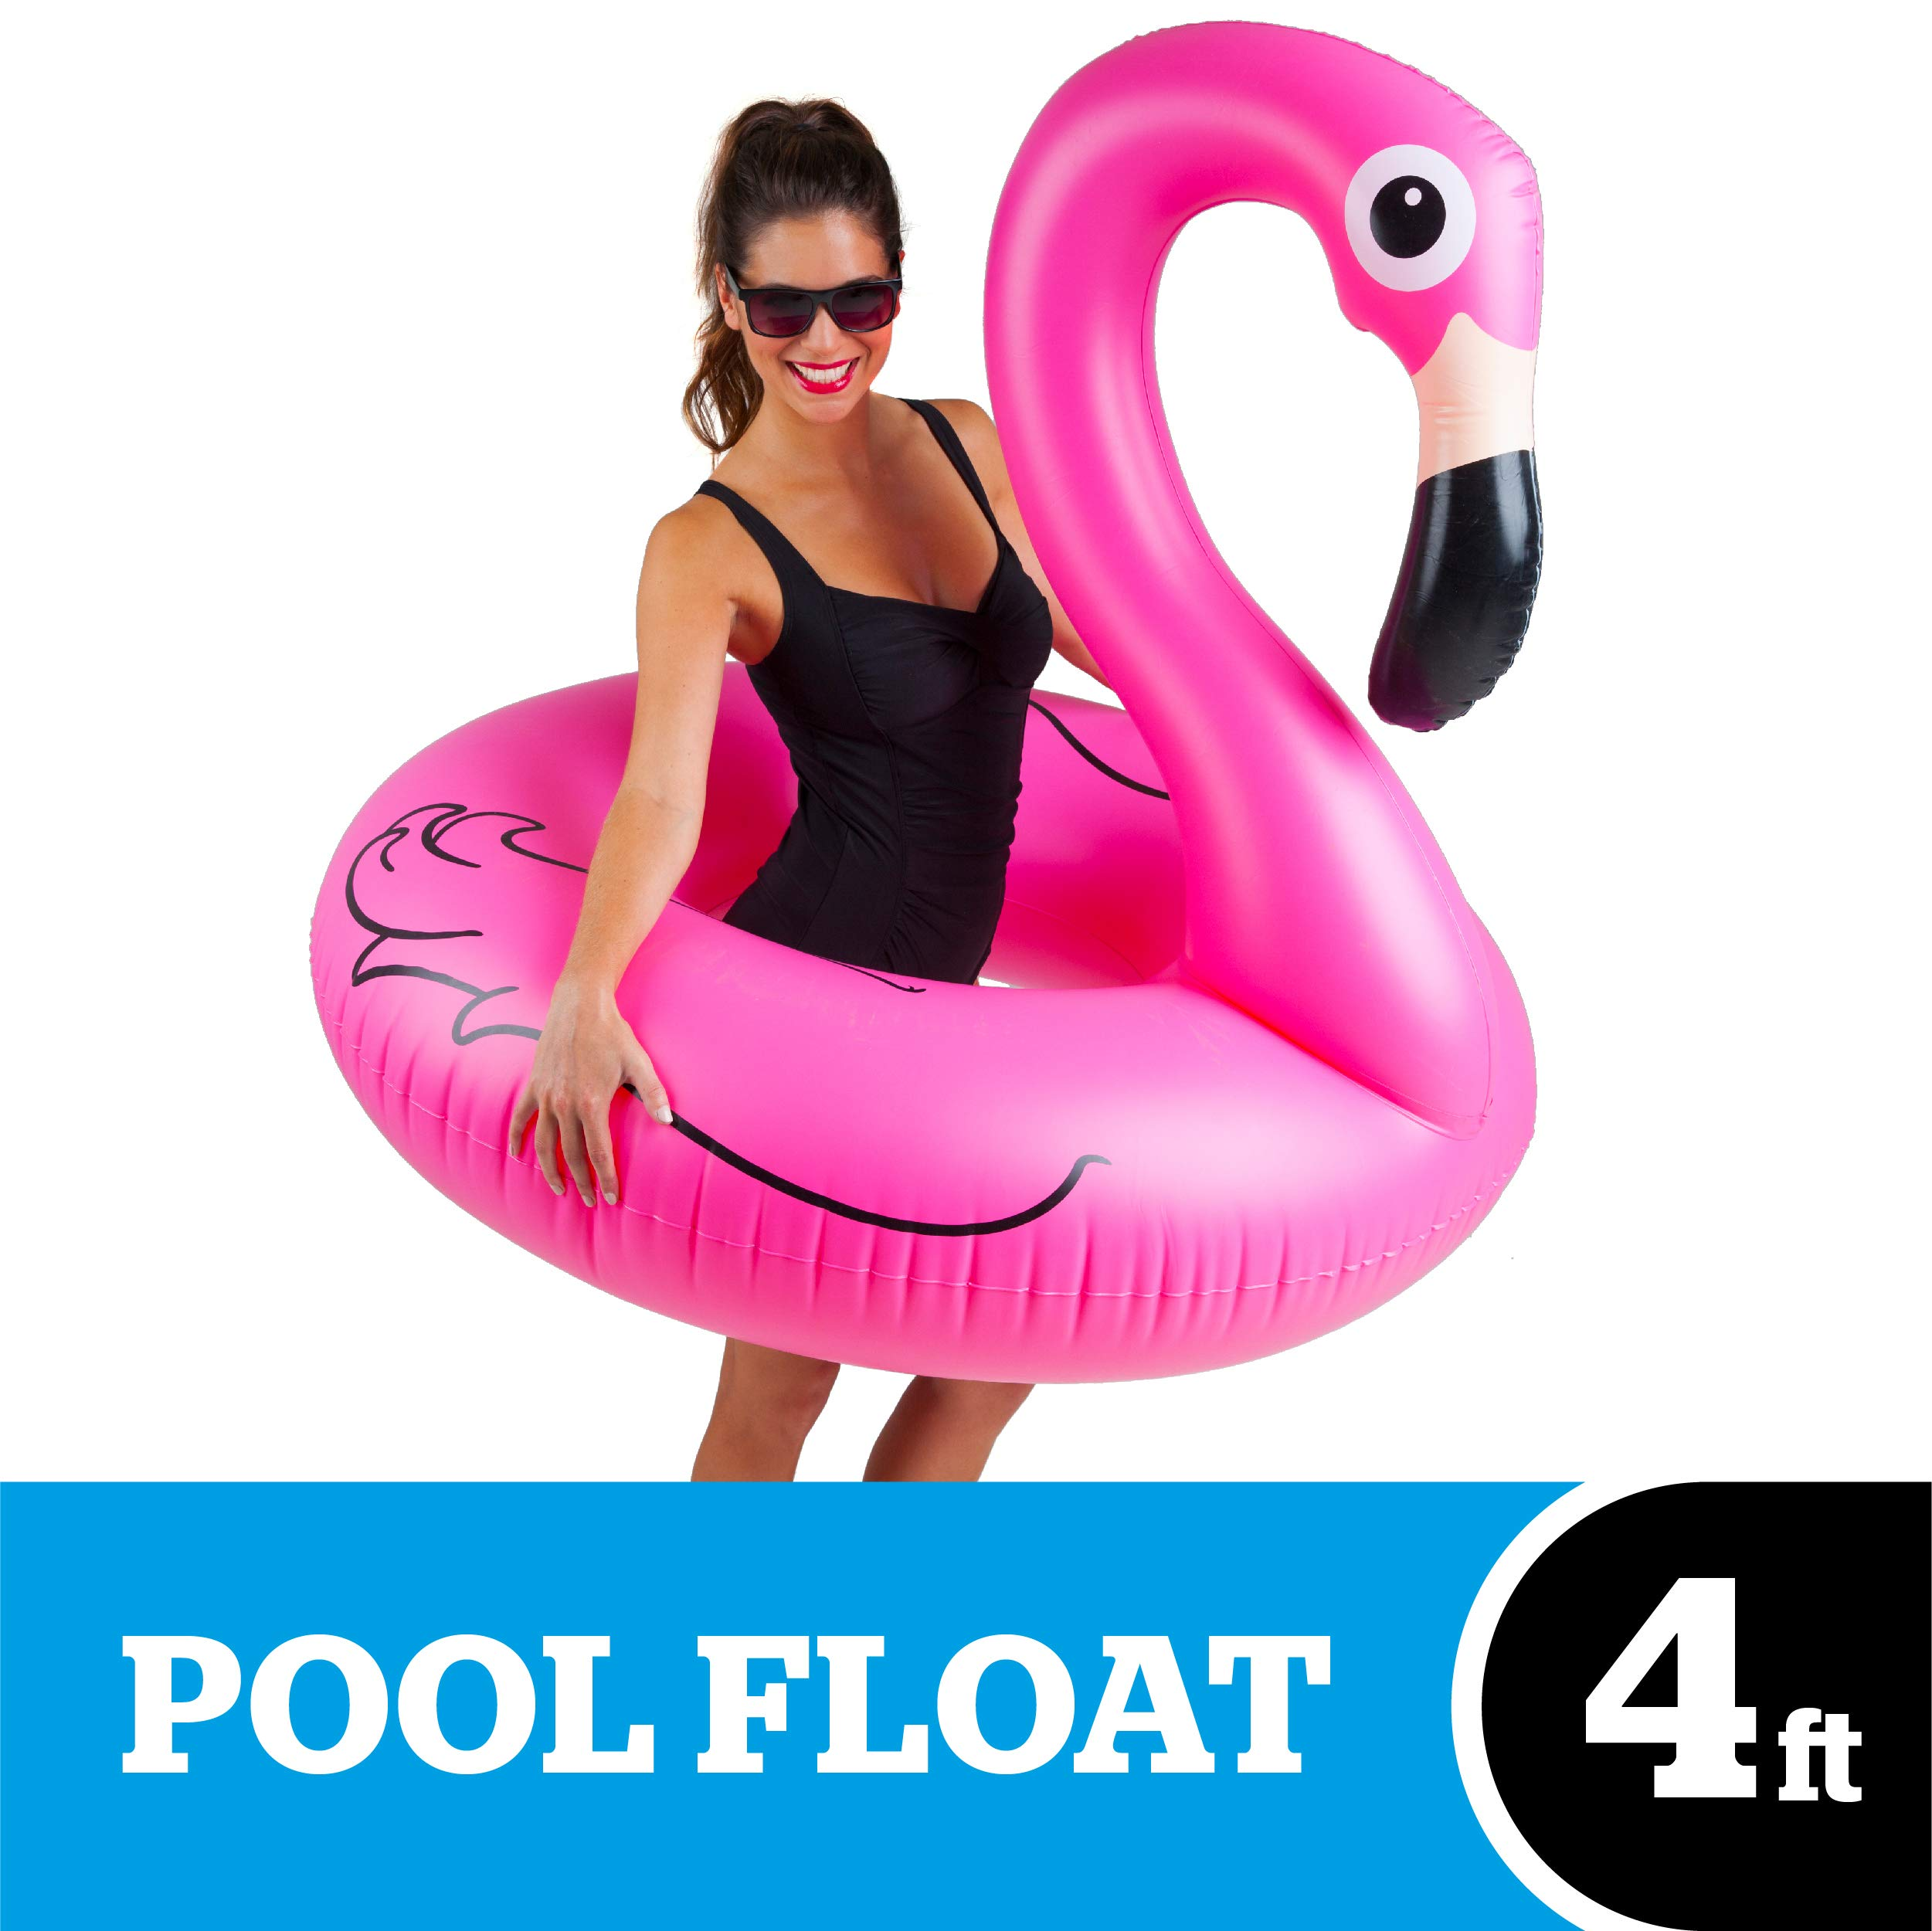 Floats & Rafts Yard, Garden & Outdoor Living The Best Cool Flamingo Pool Float With Shades Pink Pool Toys Kids Adults Terrific Value